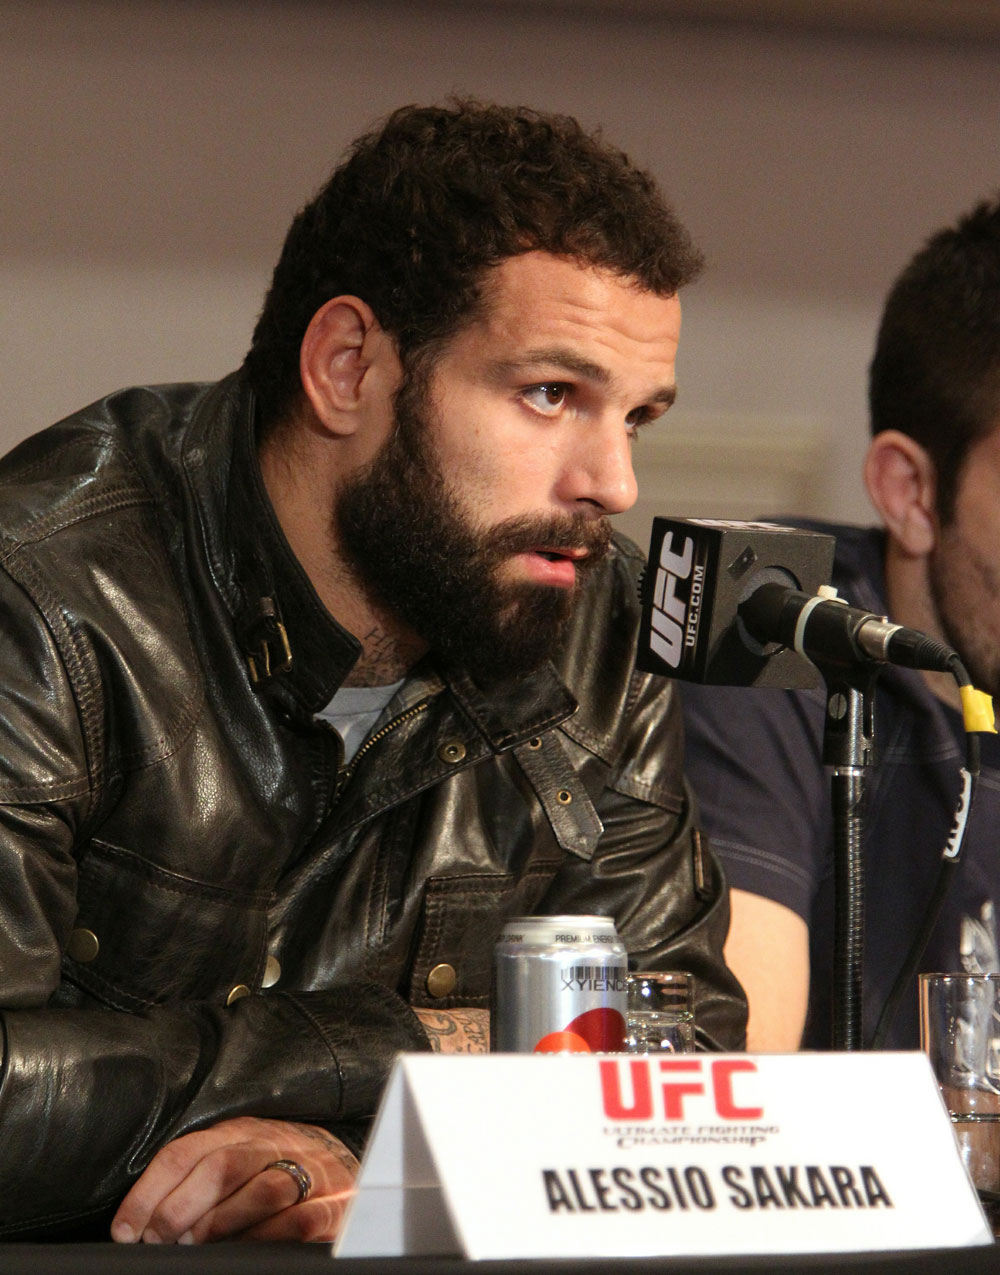 Alessio Sakara, of Italy speaks at the UFC 122 pre-fight press conference at the Hilton Hotel on November 11,  2010 in Dusseldorf, Germany.  (Photo by Josh Hedges/Zuffa LLC/Zuffa LLC via Getty Images)